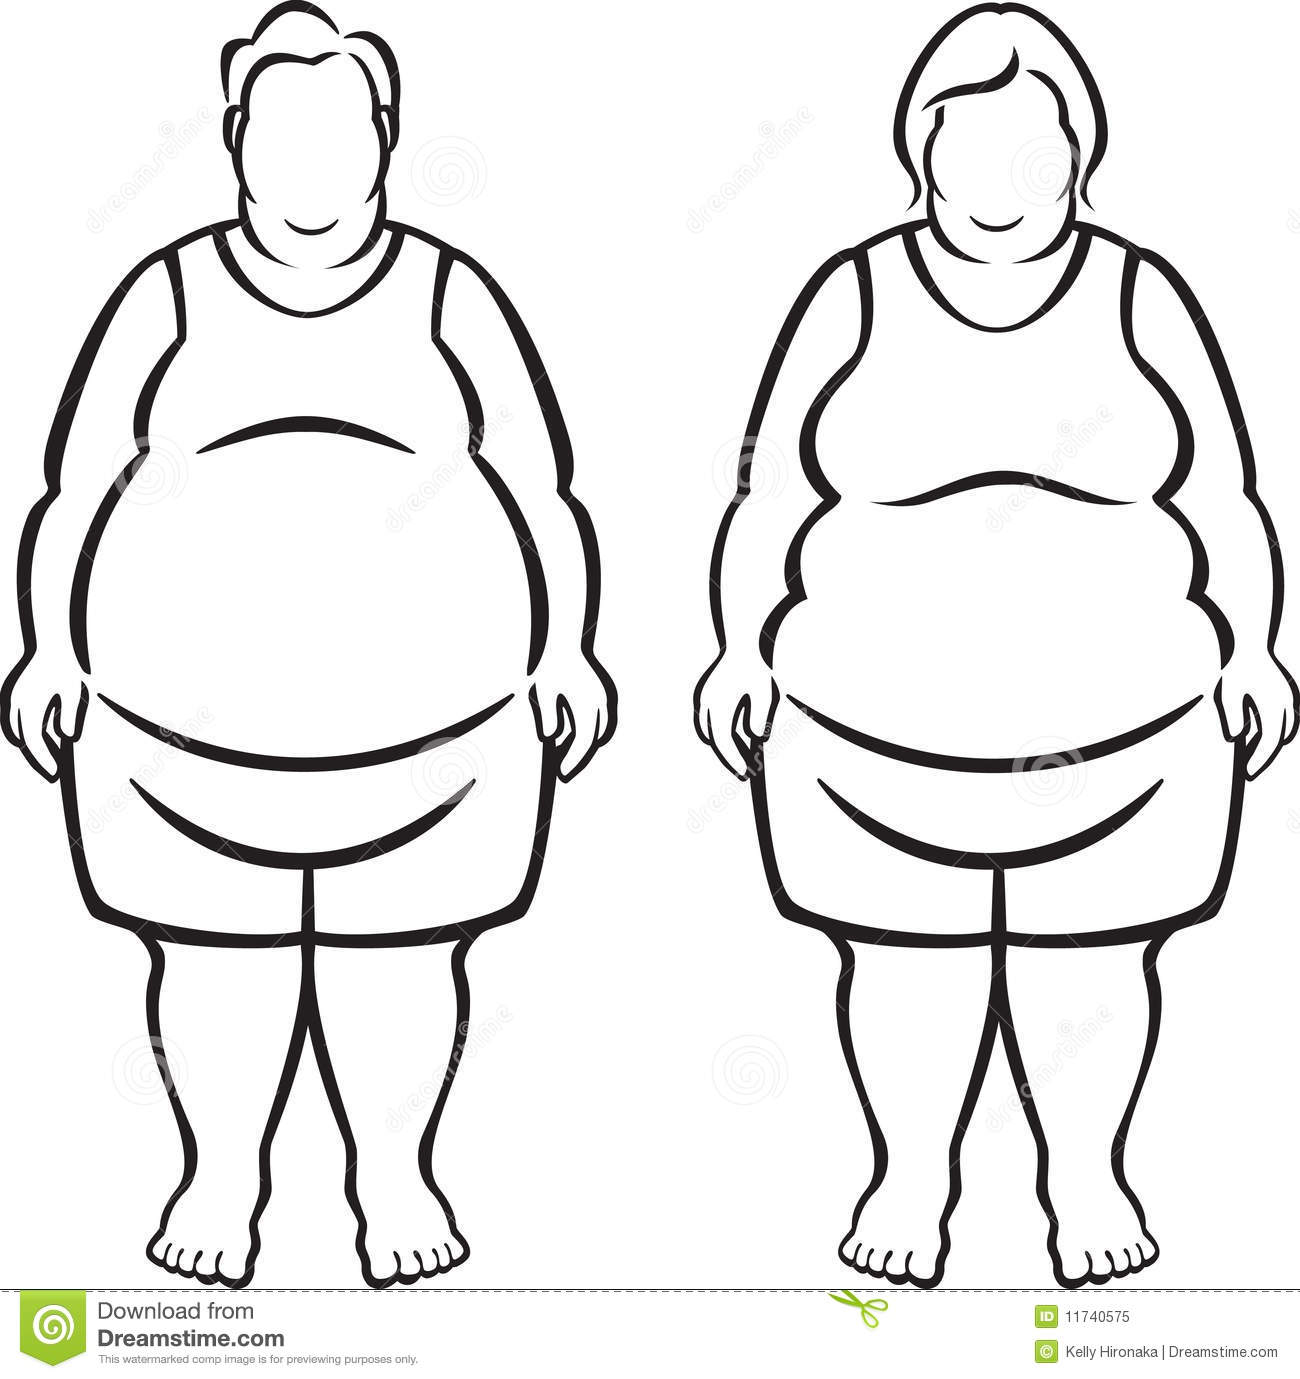 Morbidly Obese People Royalty Free Stock Photo